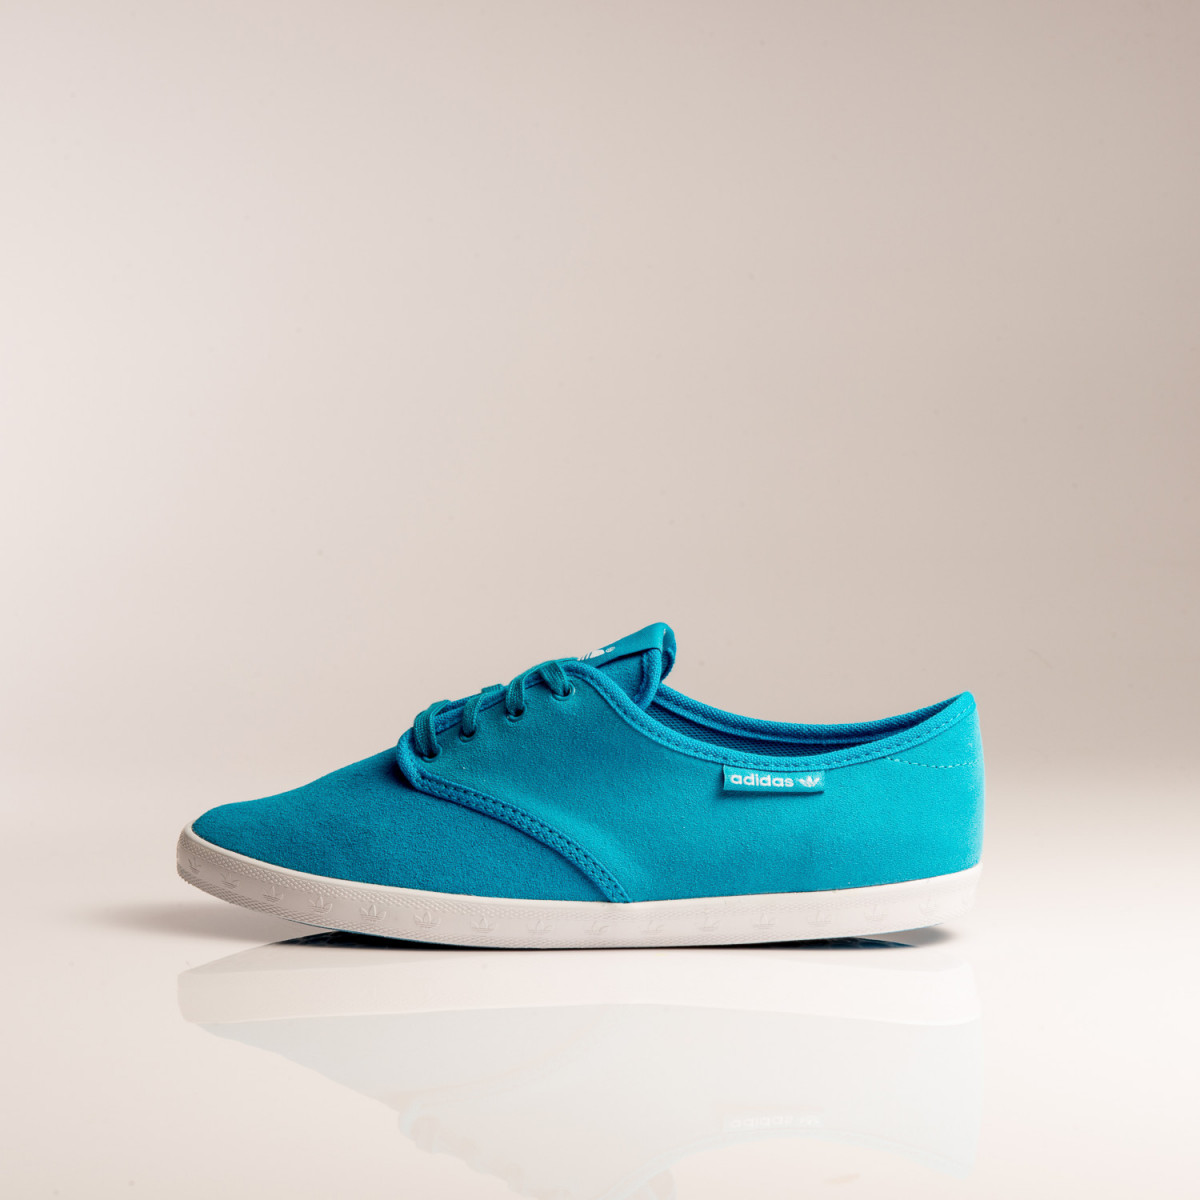 ZAPATILLAS ADIDAS ORIGINALS ADRIA PS W